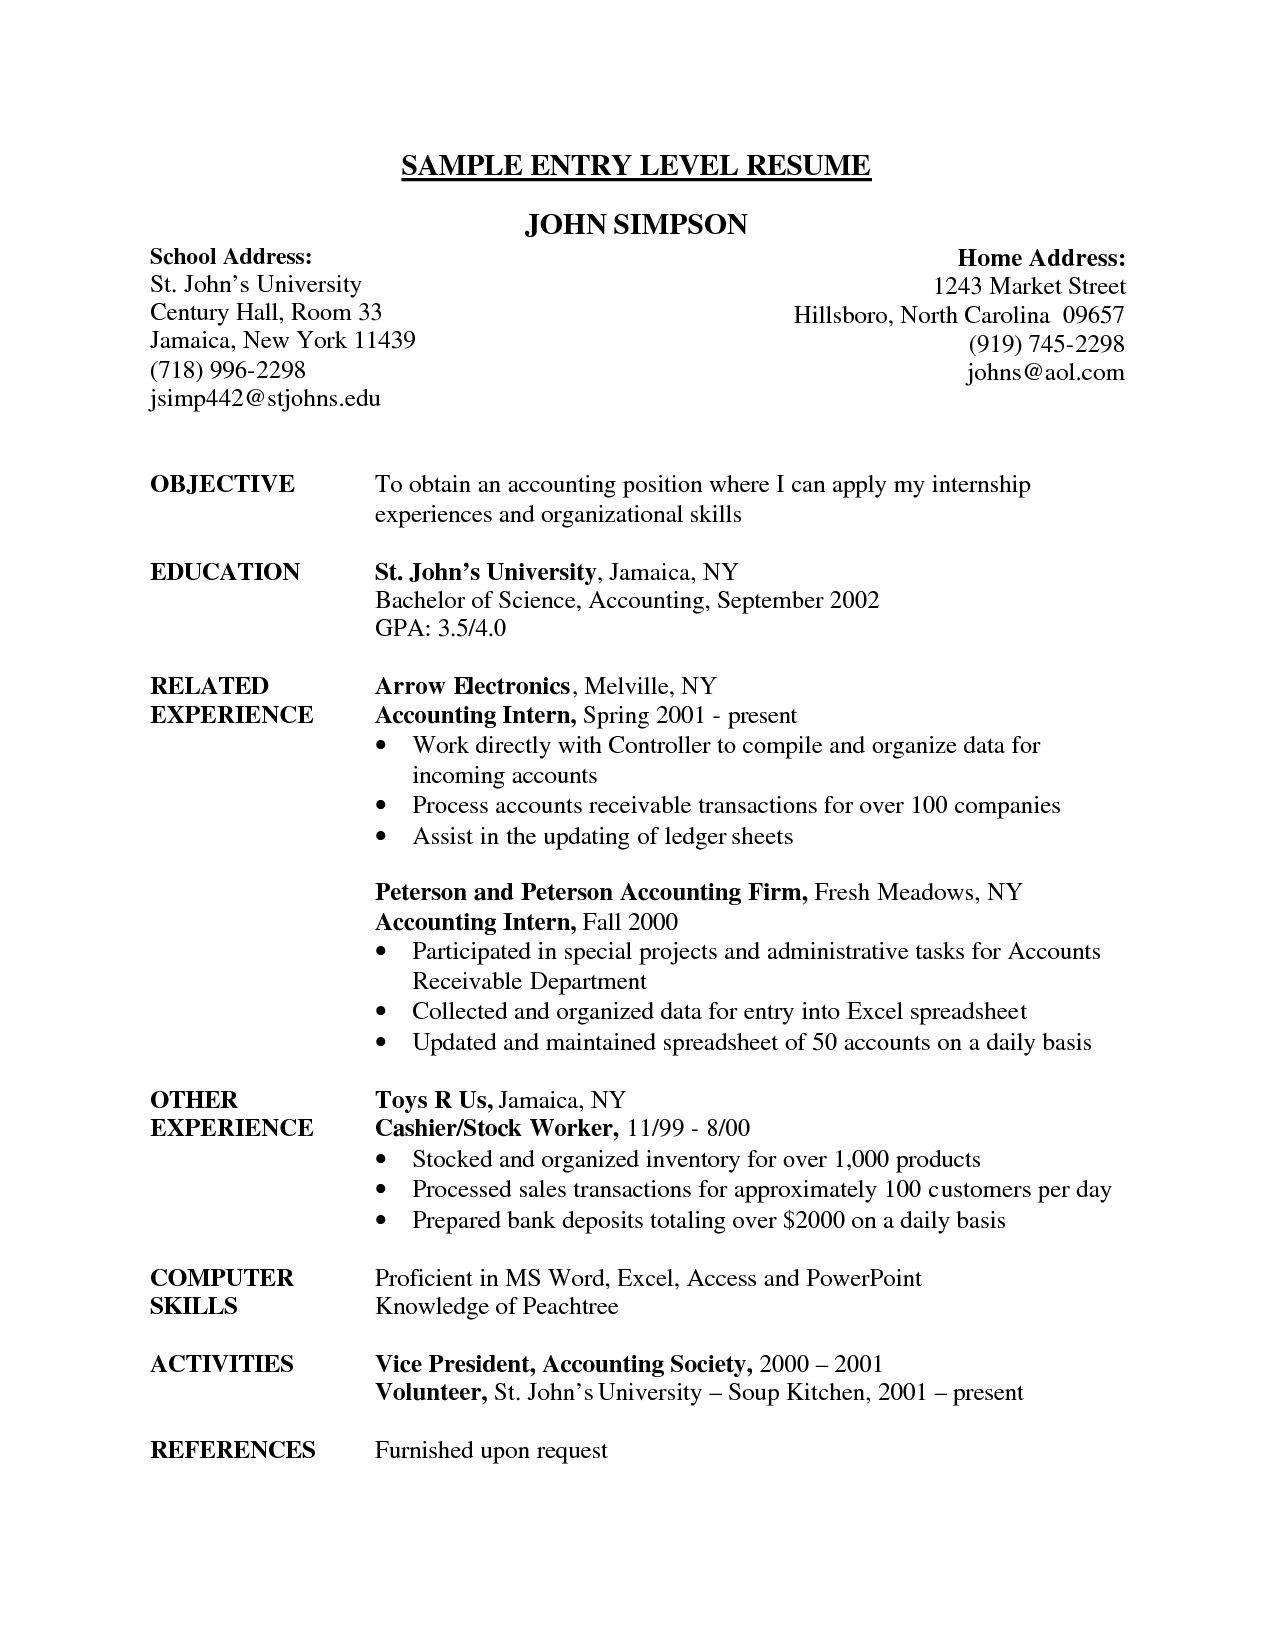 Career Resume Resume Format Entry Level 1 Resume Examples Pinterest